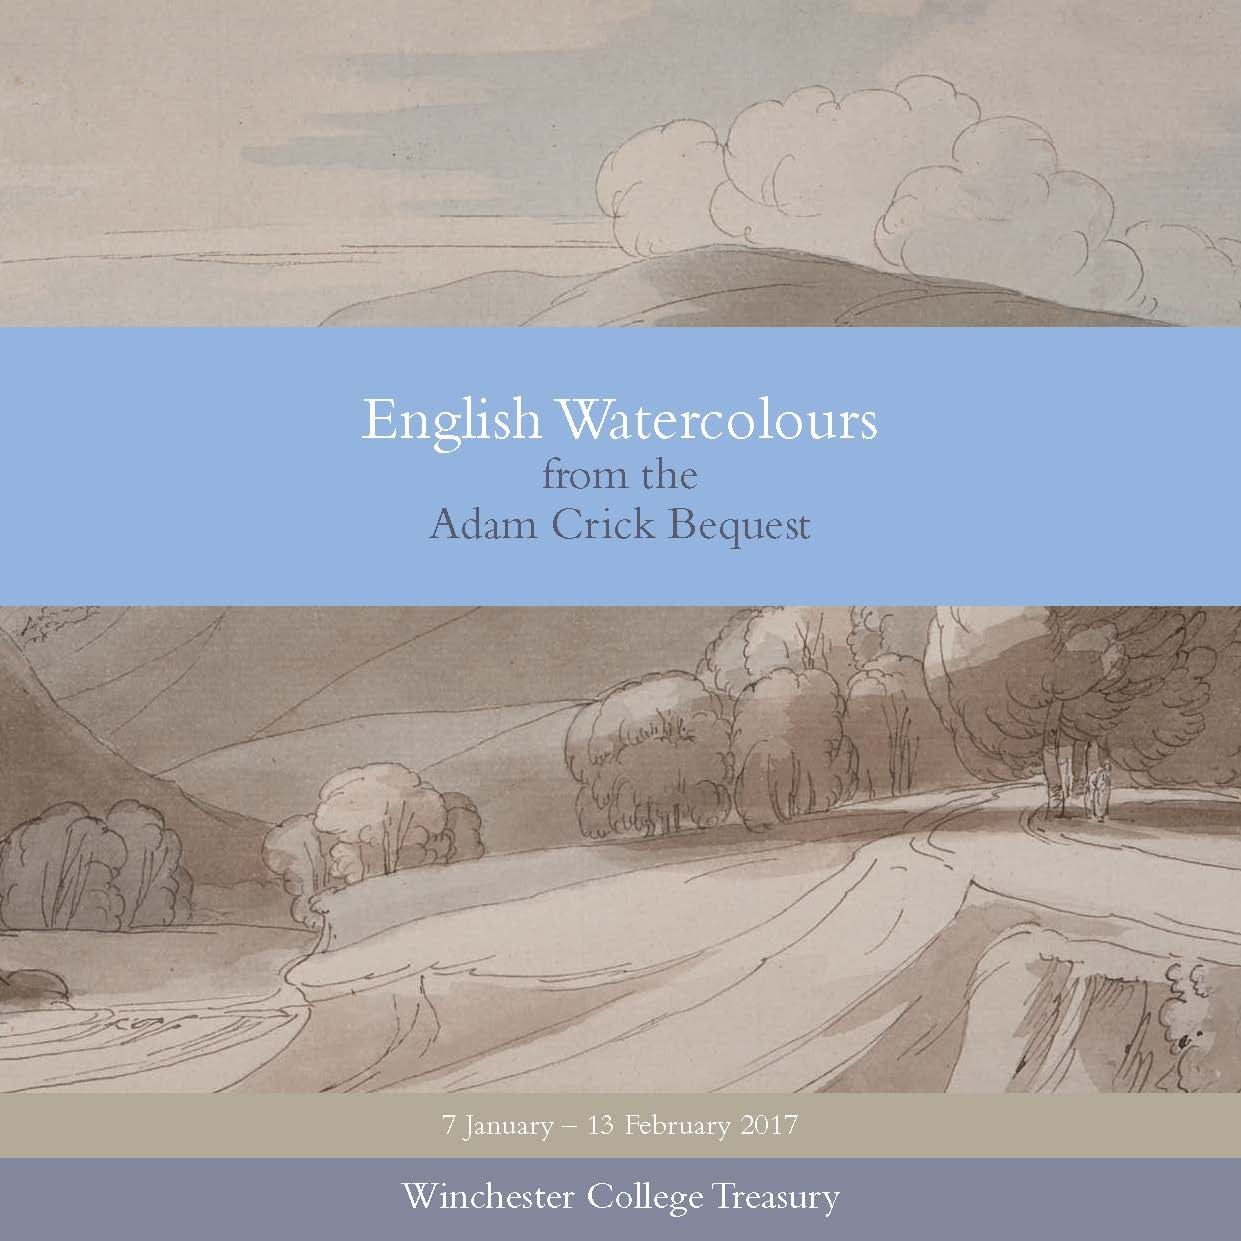 Winchester College Publication